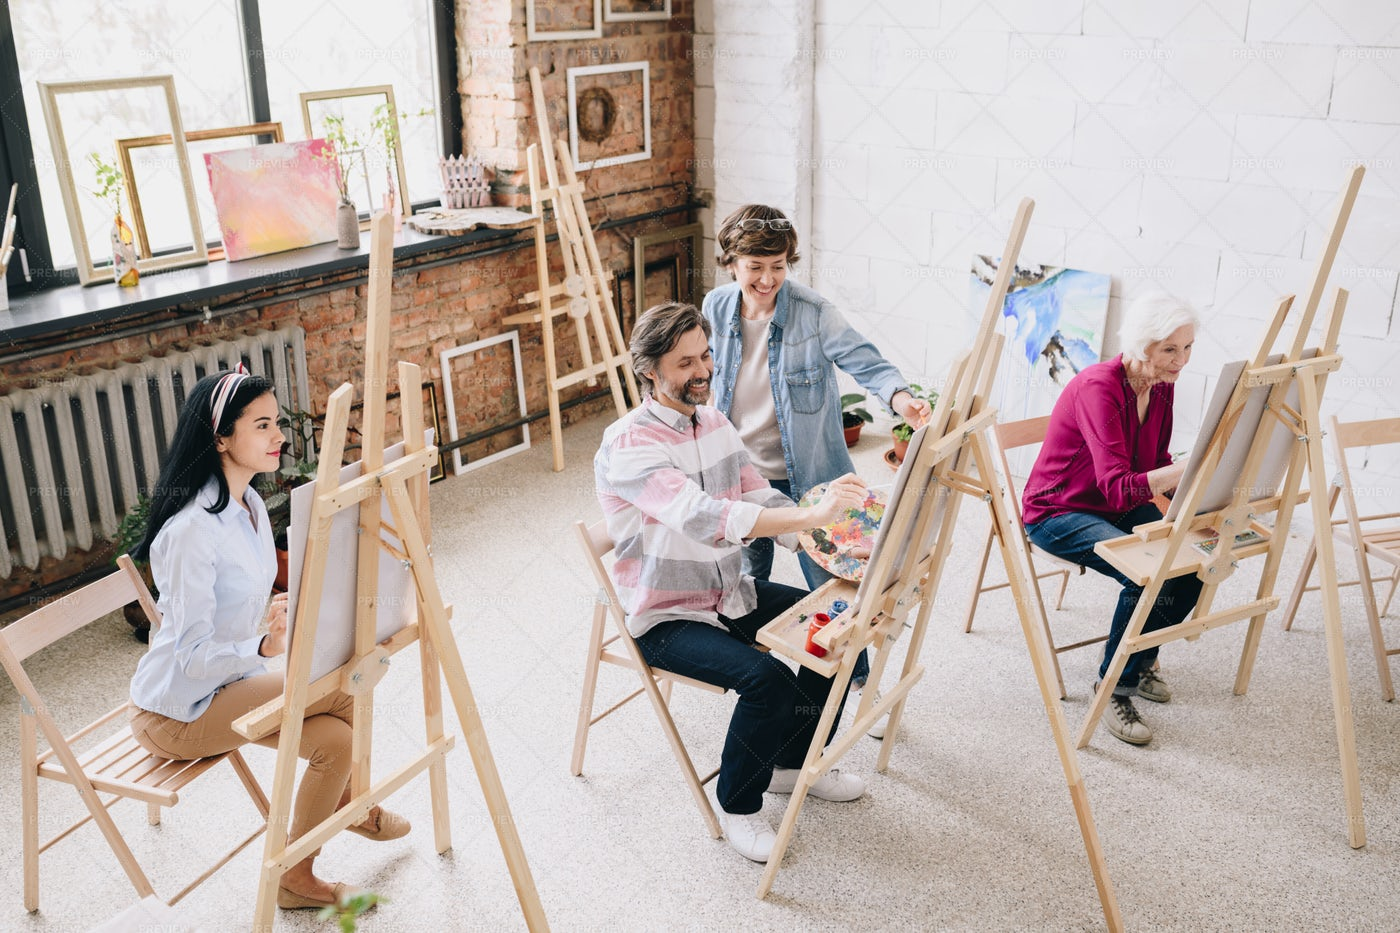 Students Painting At Easels In Art...: Stock Photos